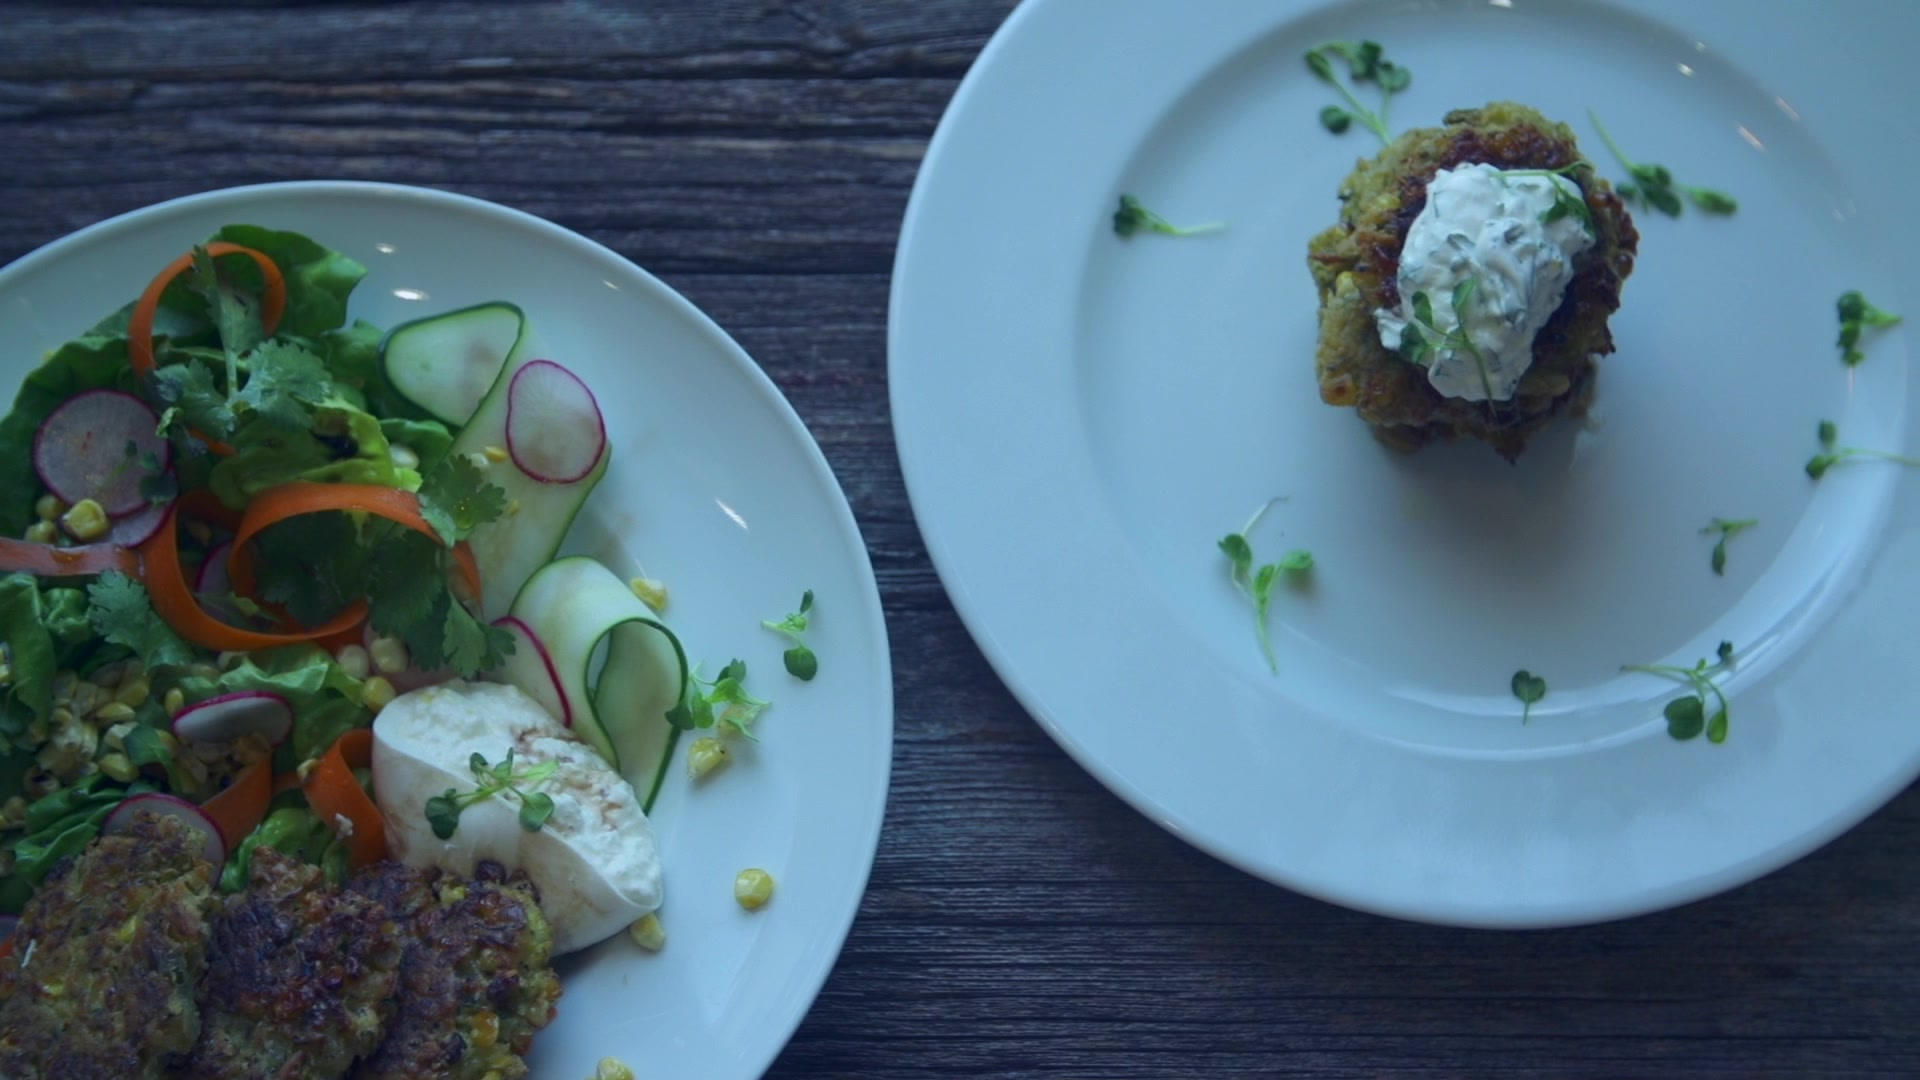 How to Make Zucchini and Corn Fritter with Burrata Salad